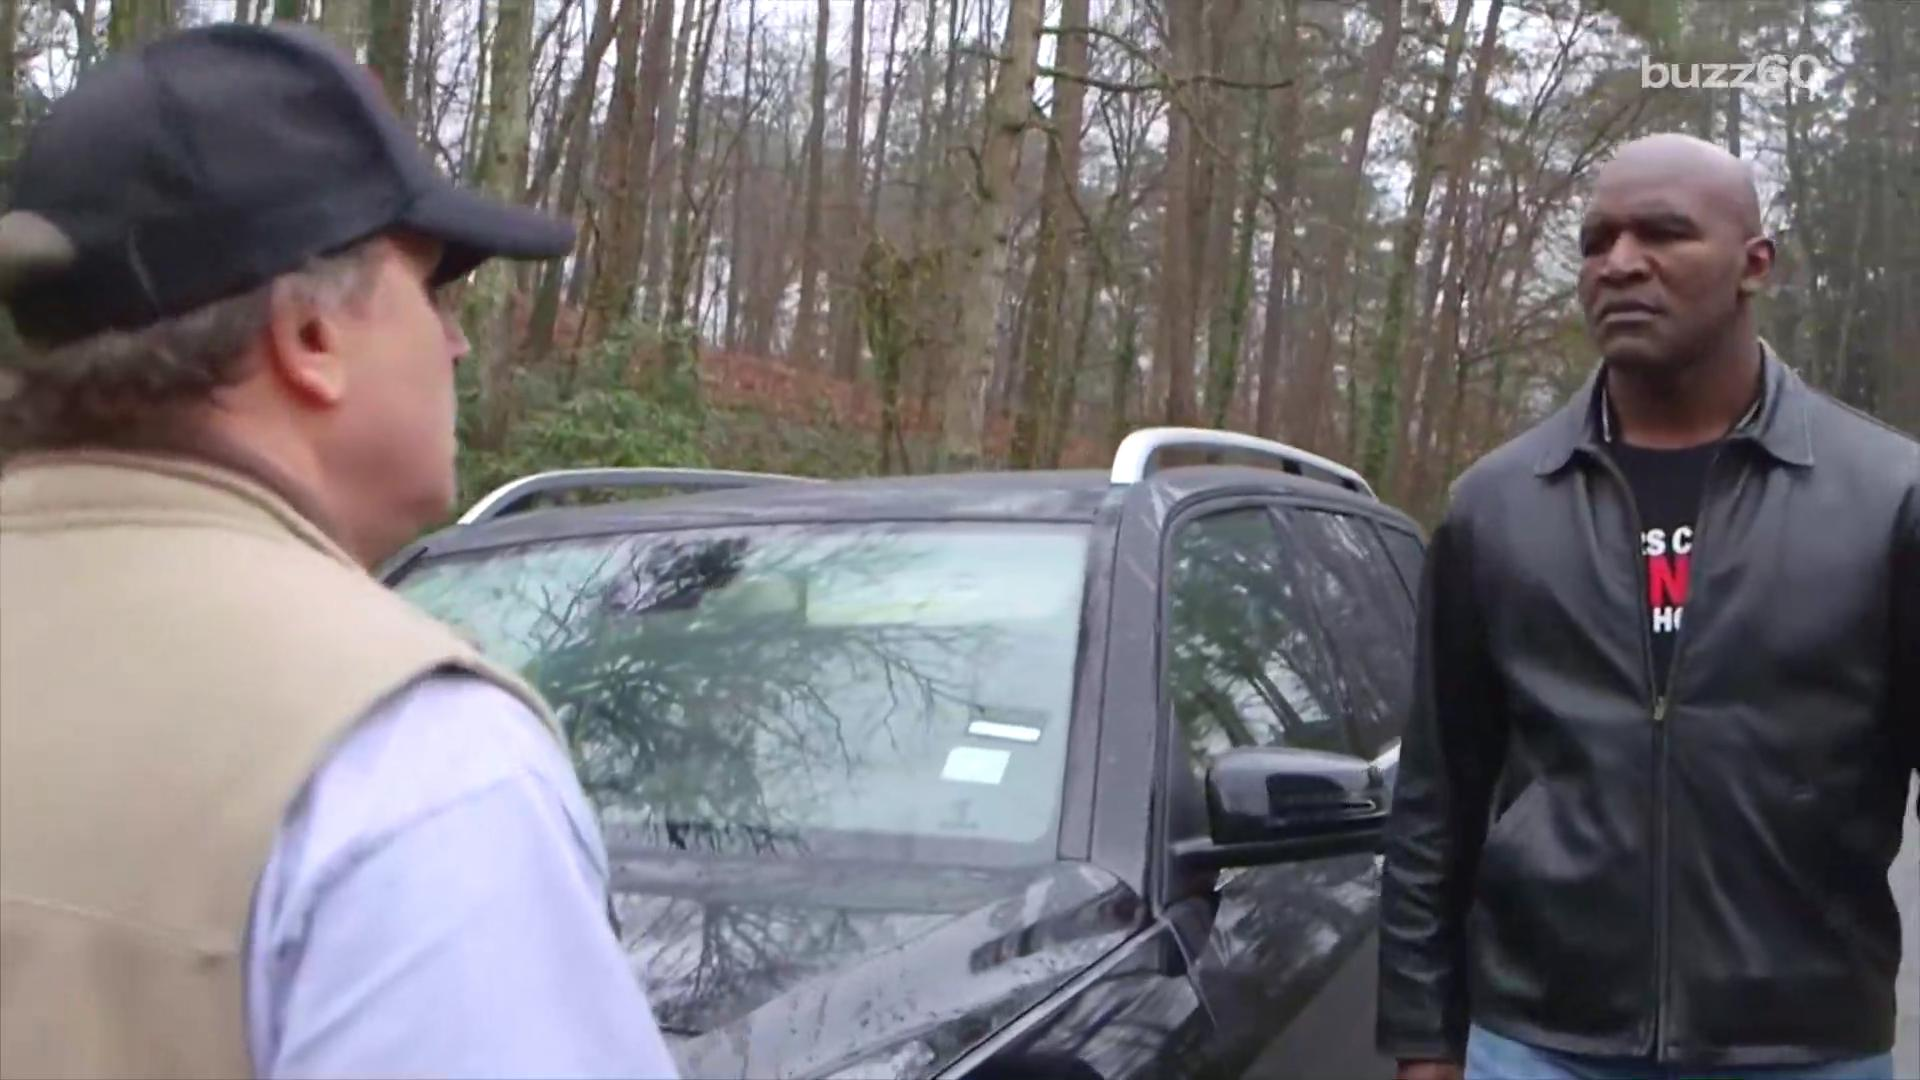 Evander Holyfield video hilariously shows dangers of road rage